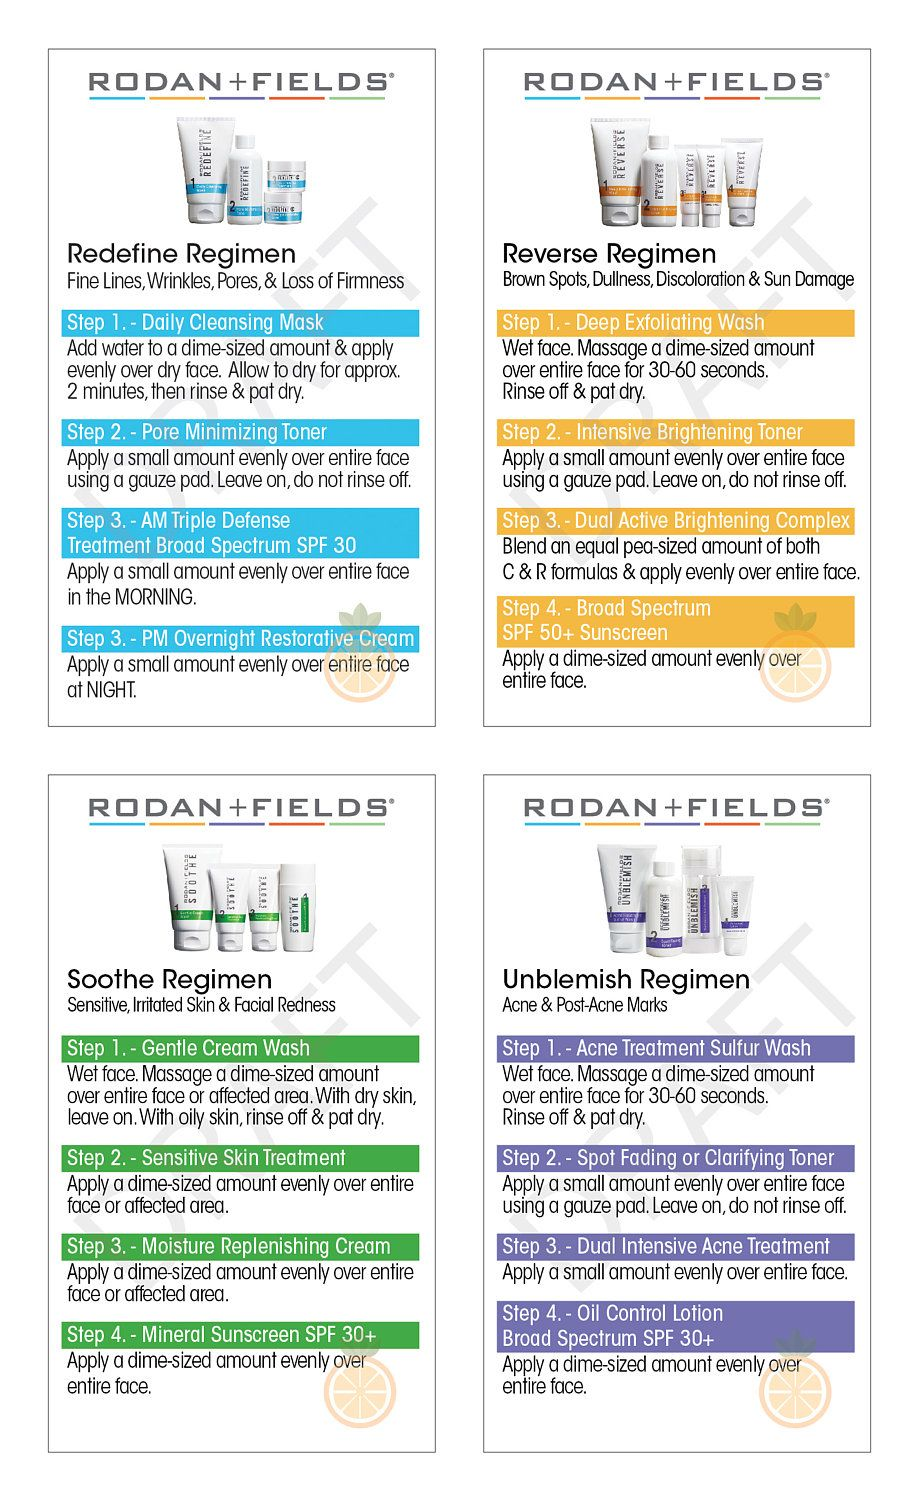 Rodan And Fields Regimen Instructions Sized As Business Cards For